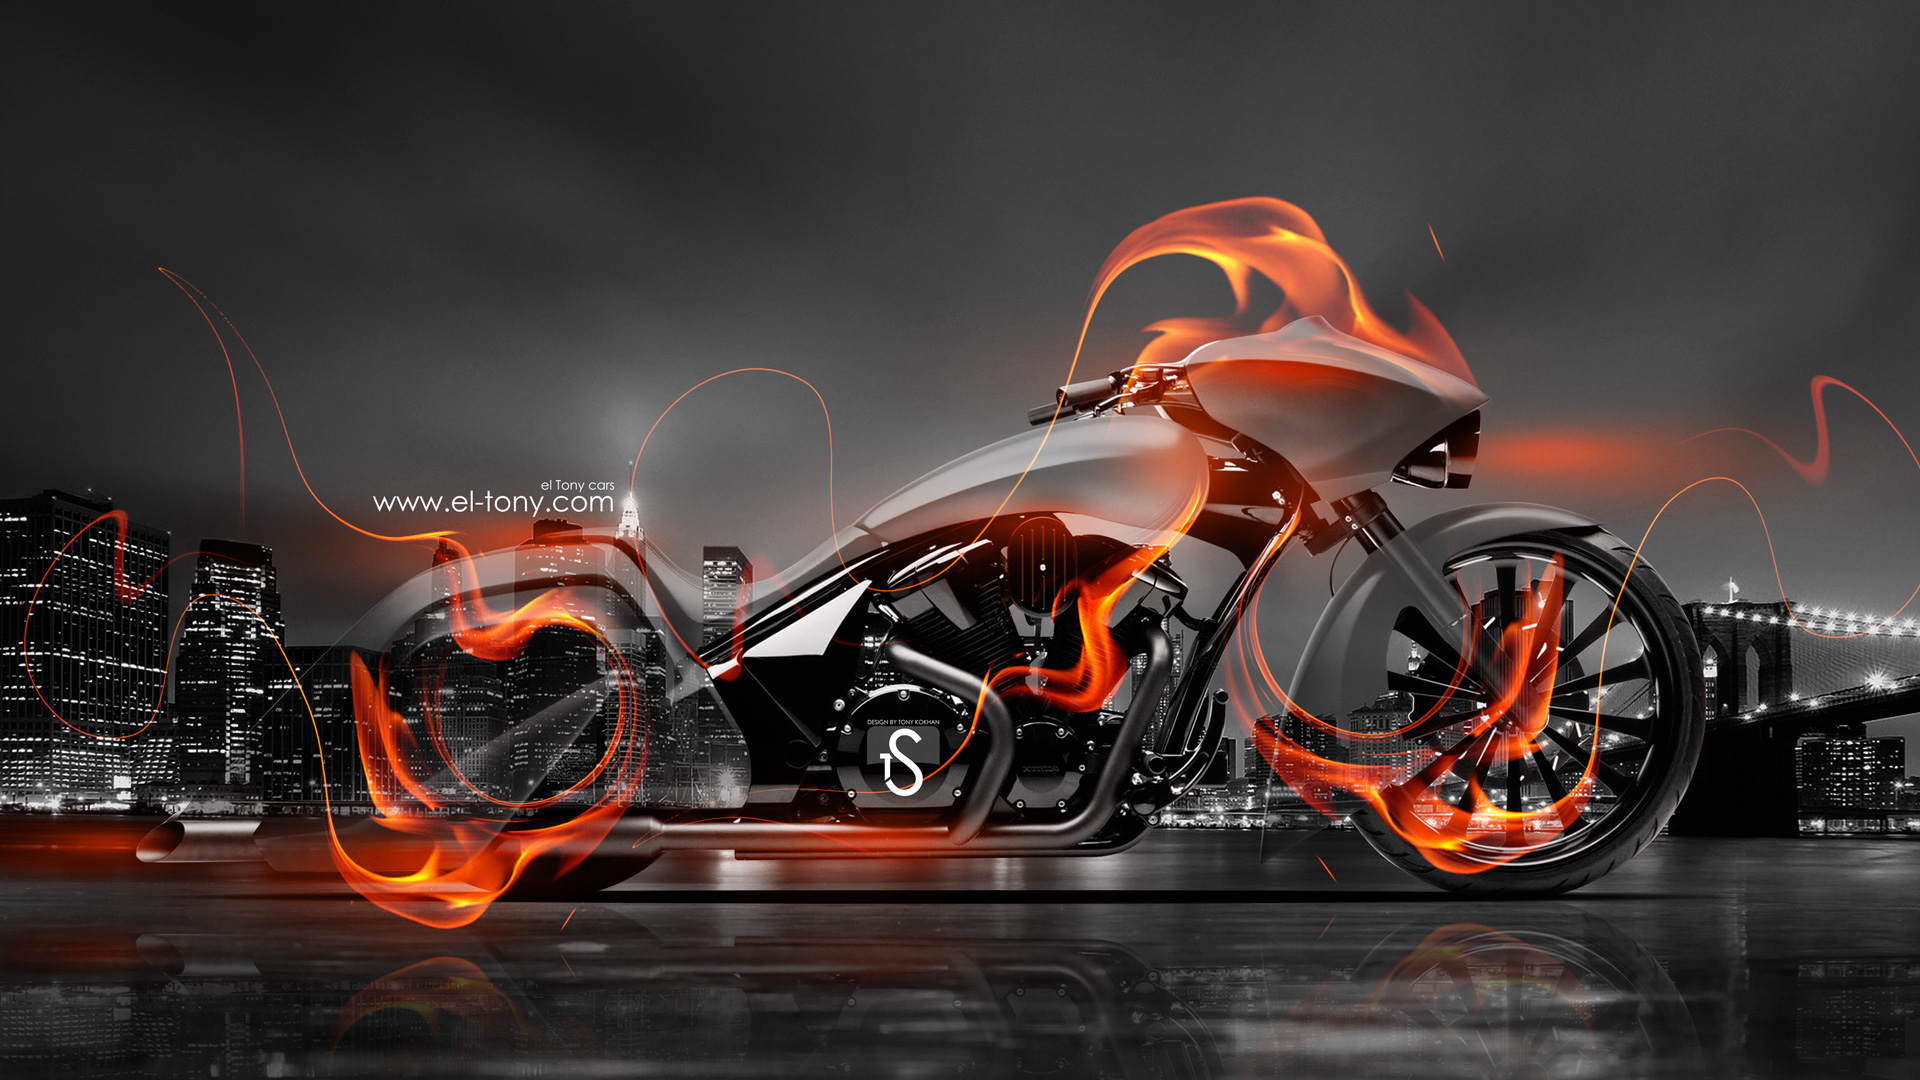 Merveilleux Super Moto Fire Crystal City Bike 2014 HD